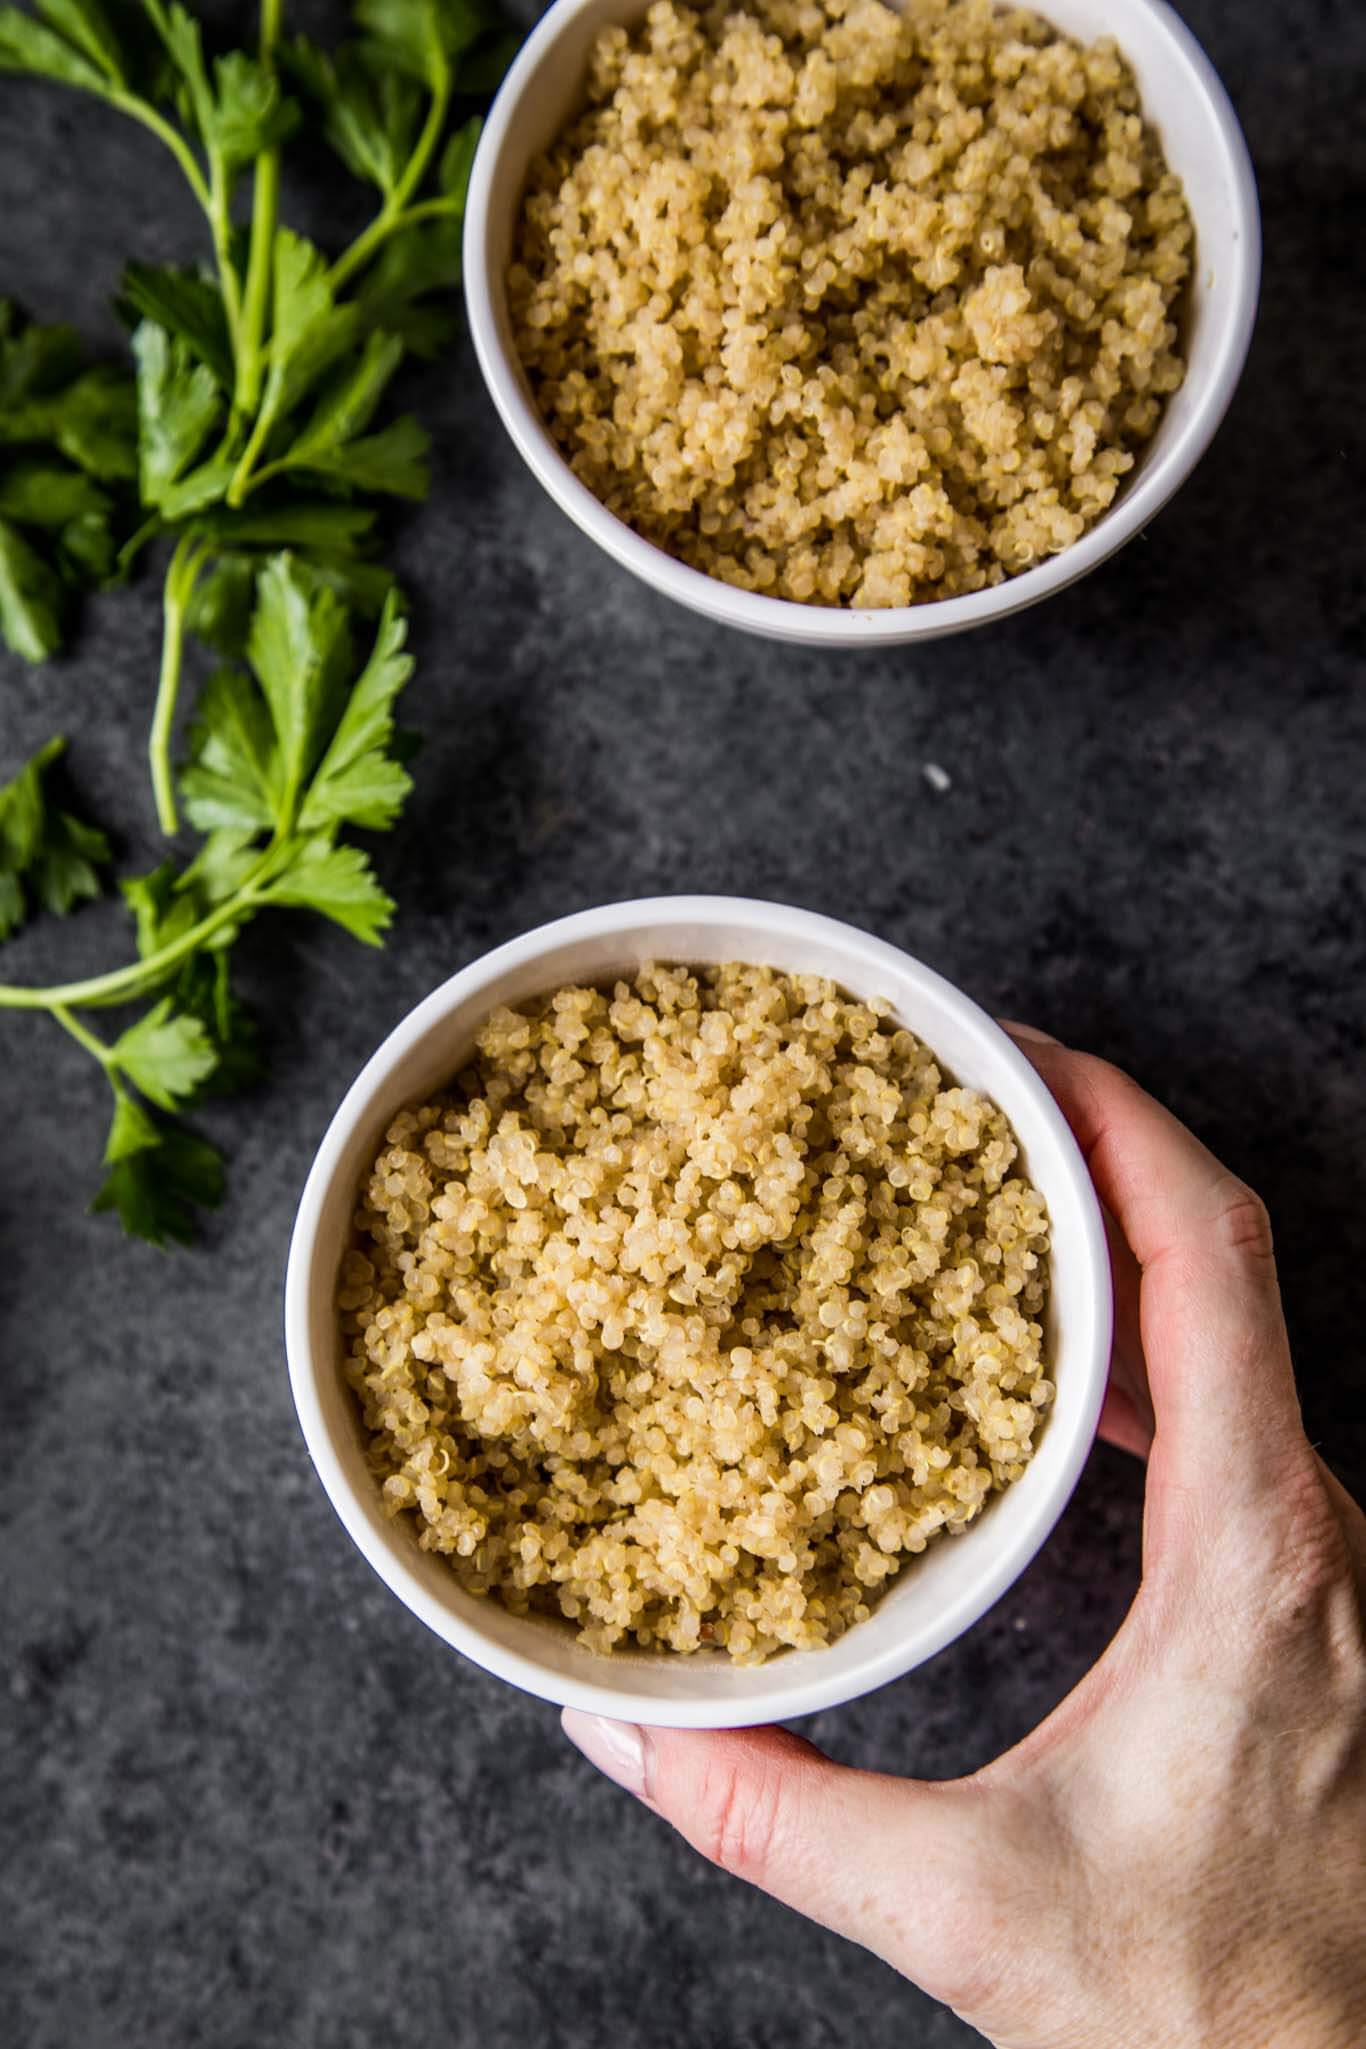 Hand reaching for Quinoa